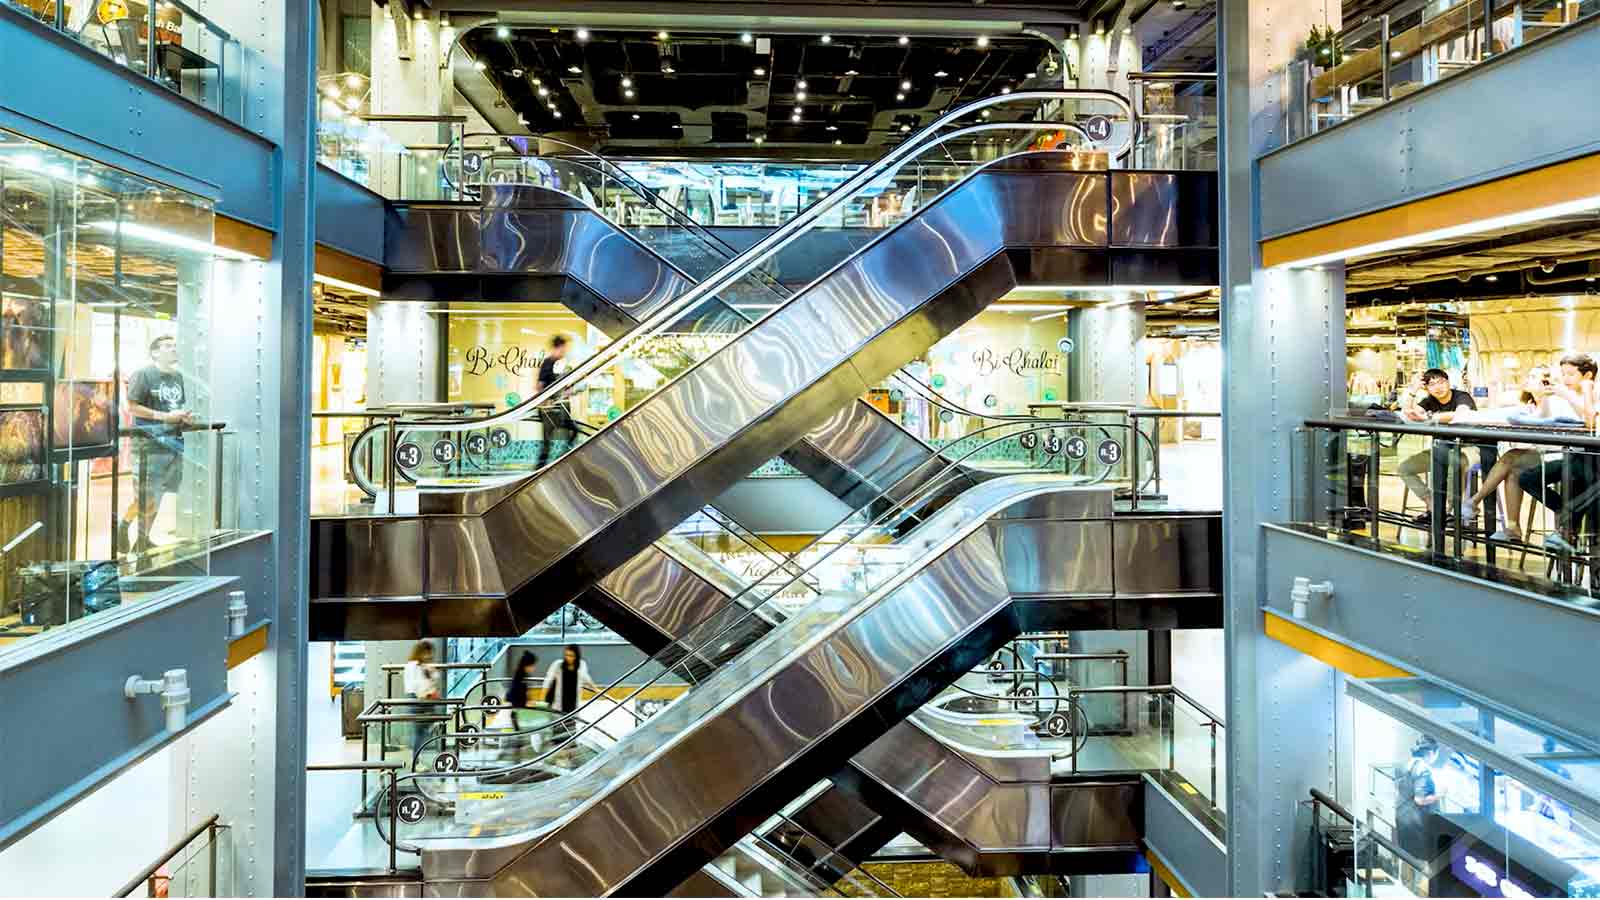 Modern escalators inside a building.